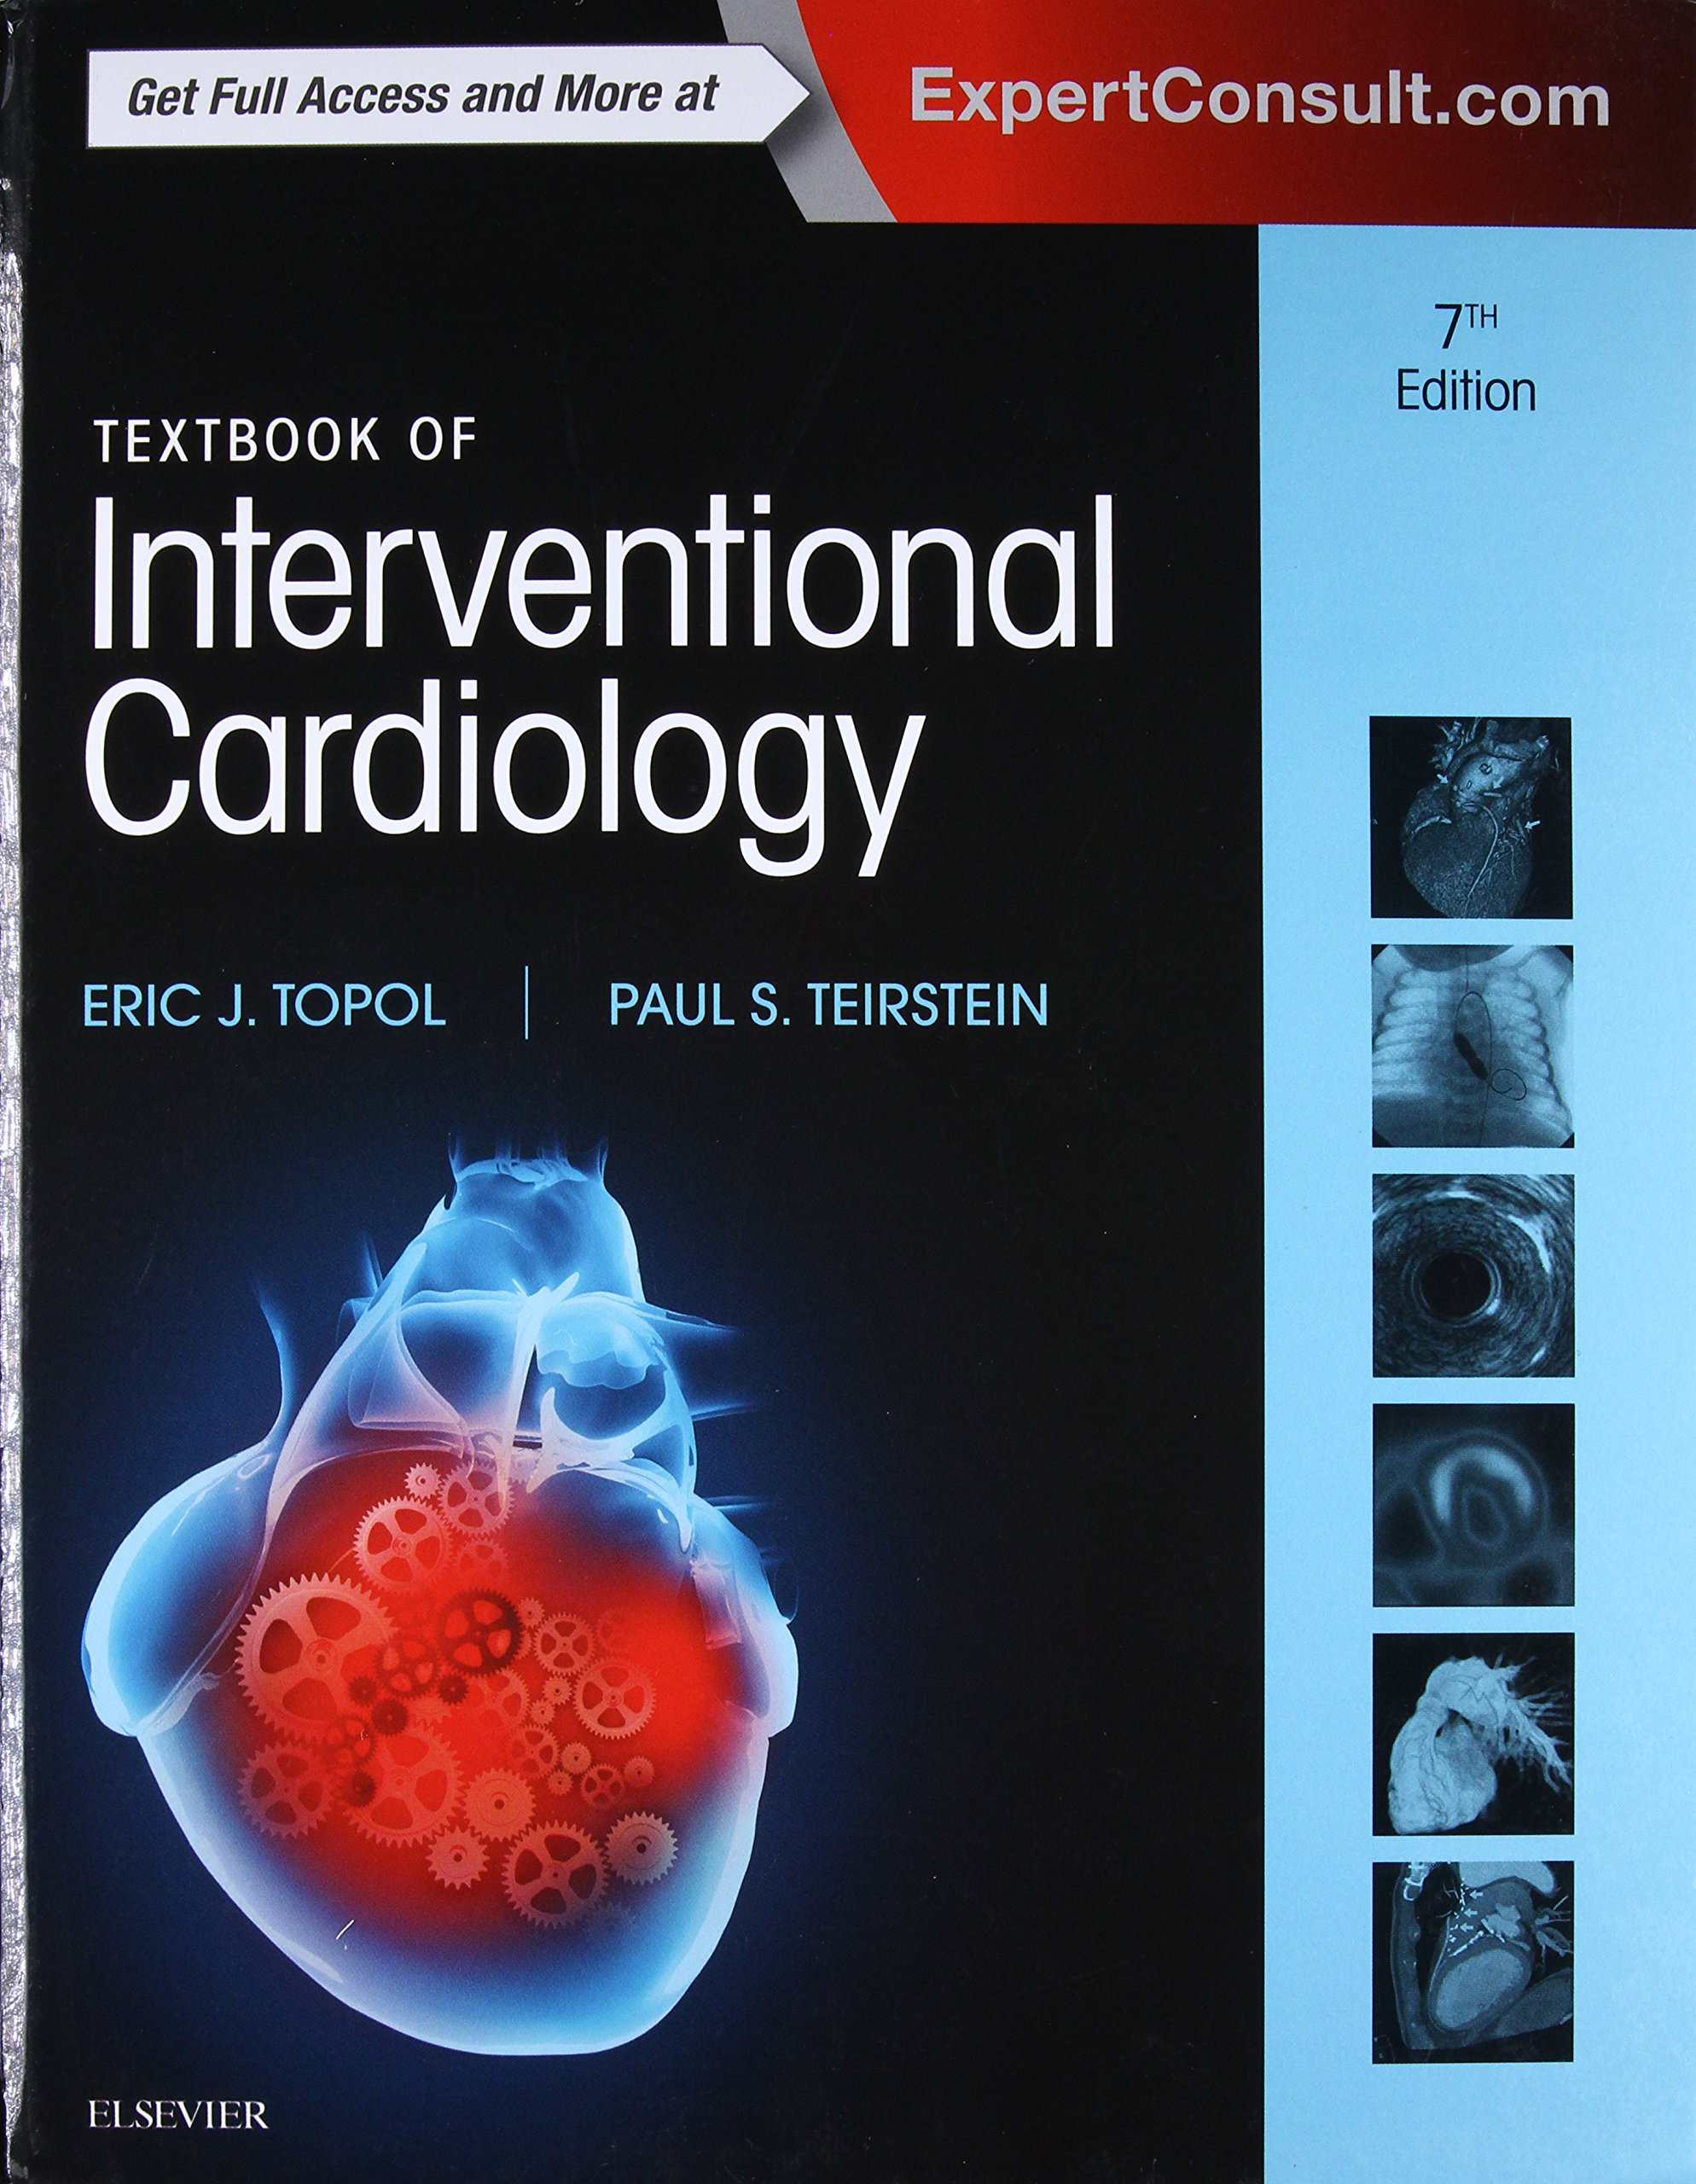 Buy Textbook of Interventional Cardiology Book Online at Low